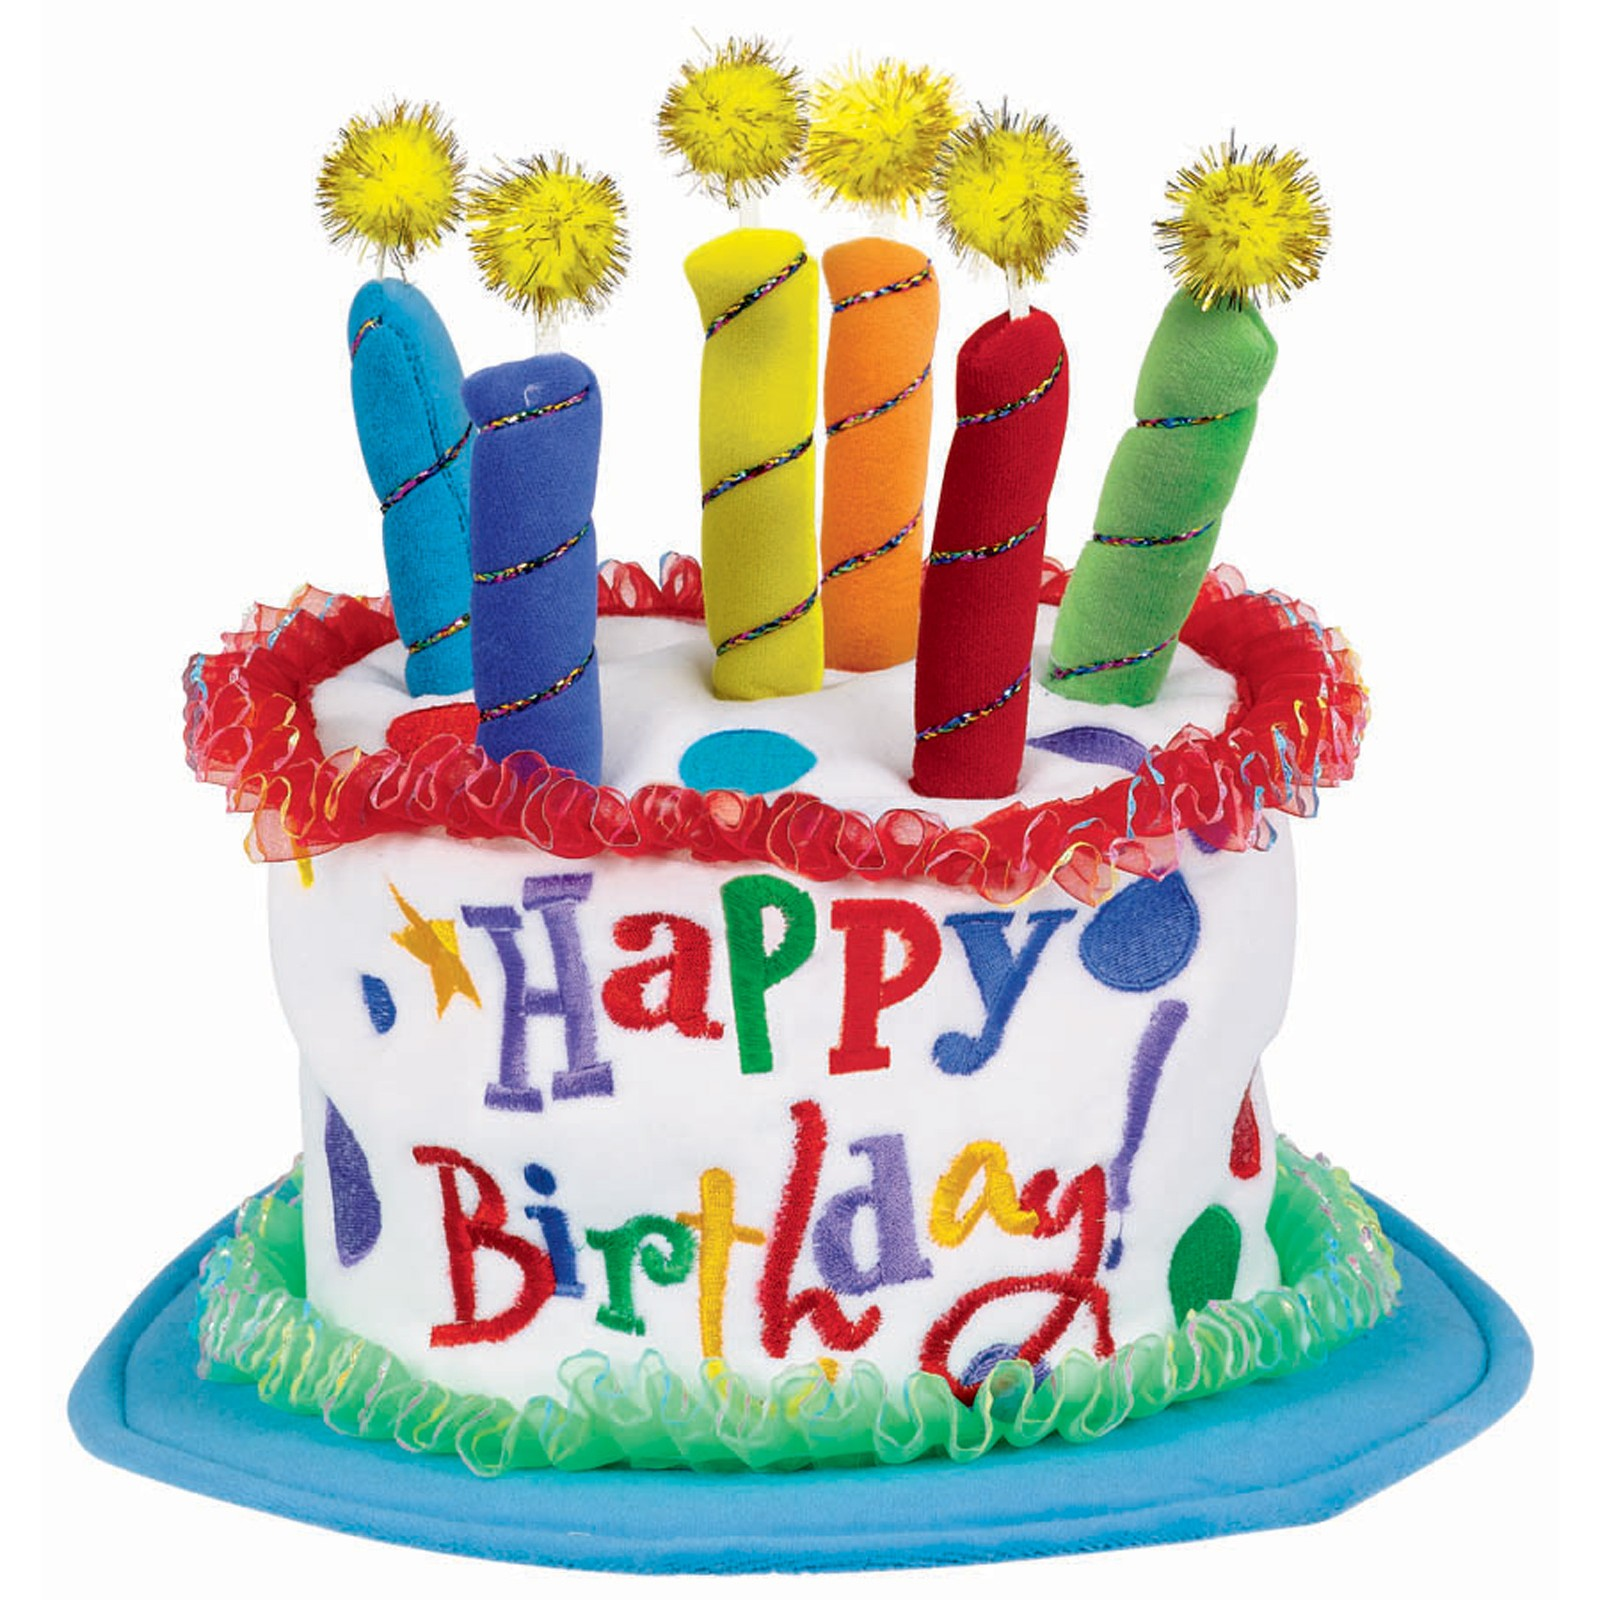 Best Birthday Cake Images Free Download : Birthday Cake Png - ClipArt Best